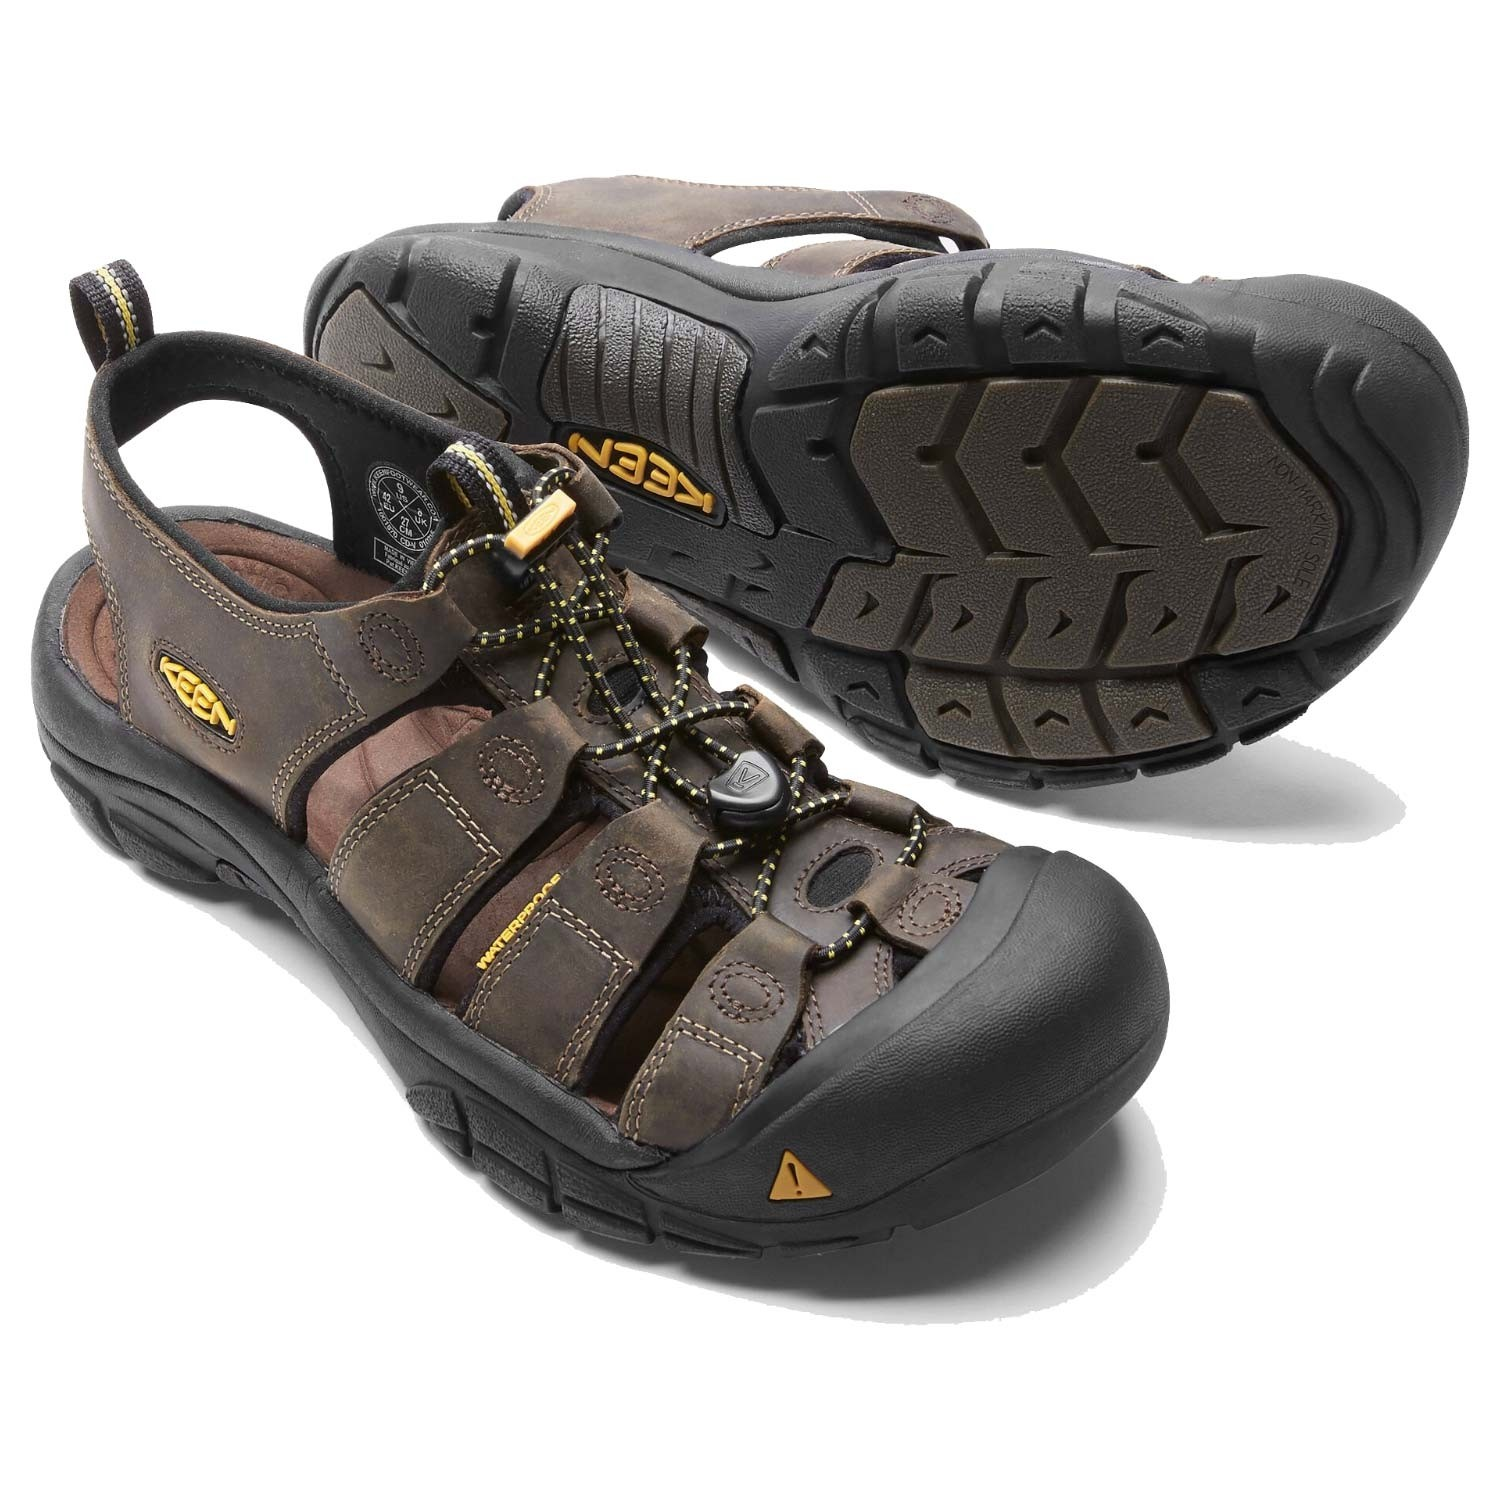 Keen Newport Sandal - Men's - Bison